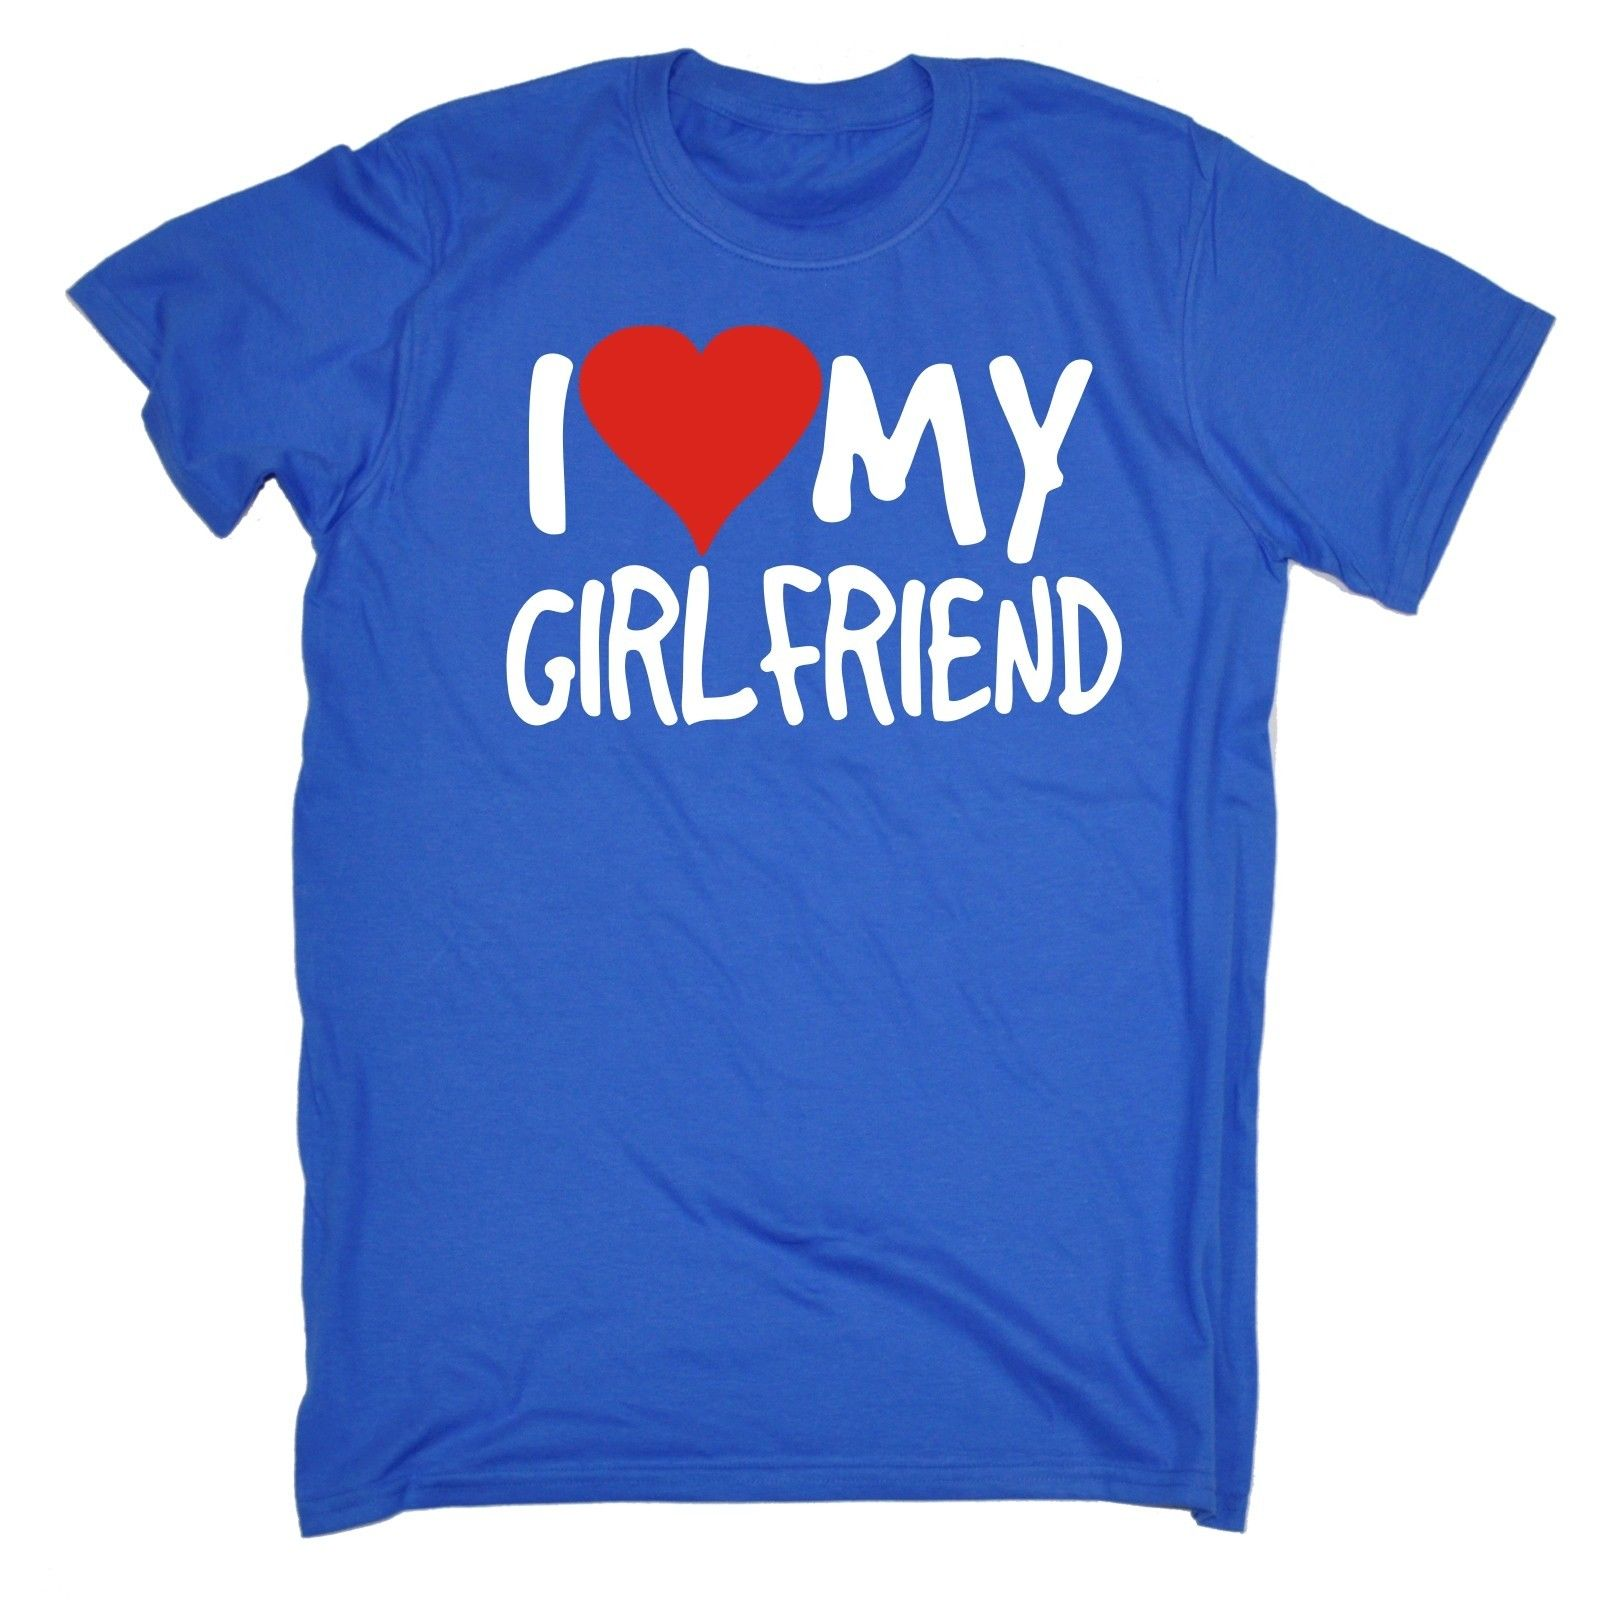 I Love My Girlfriend T SHIRT Boyfriend Dating GF Funny Present Gift Birthday Shirts Casual Brand Clothing Cotton In From Mens